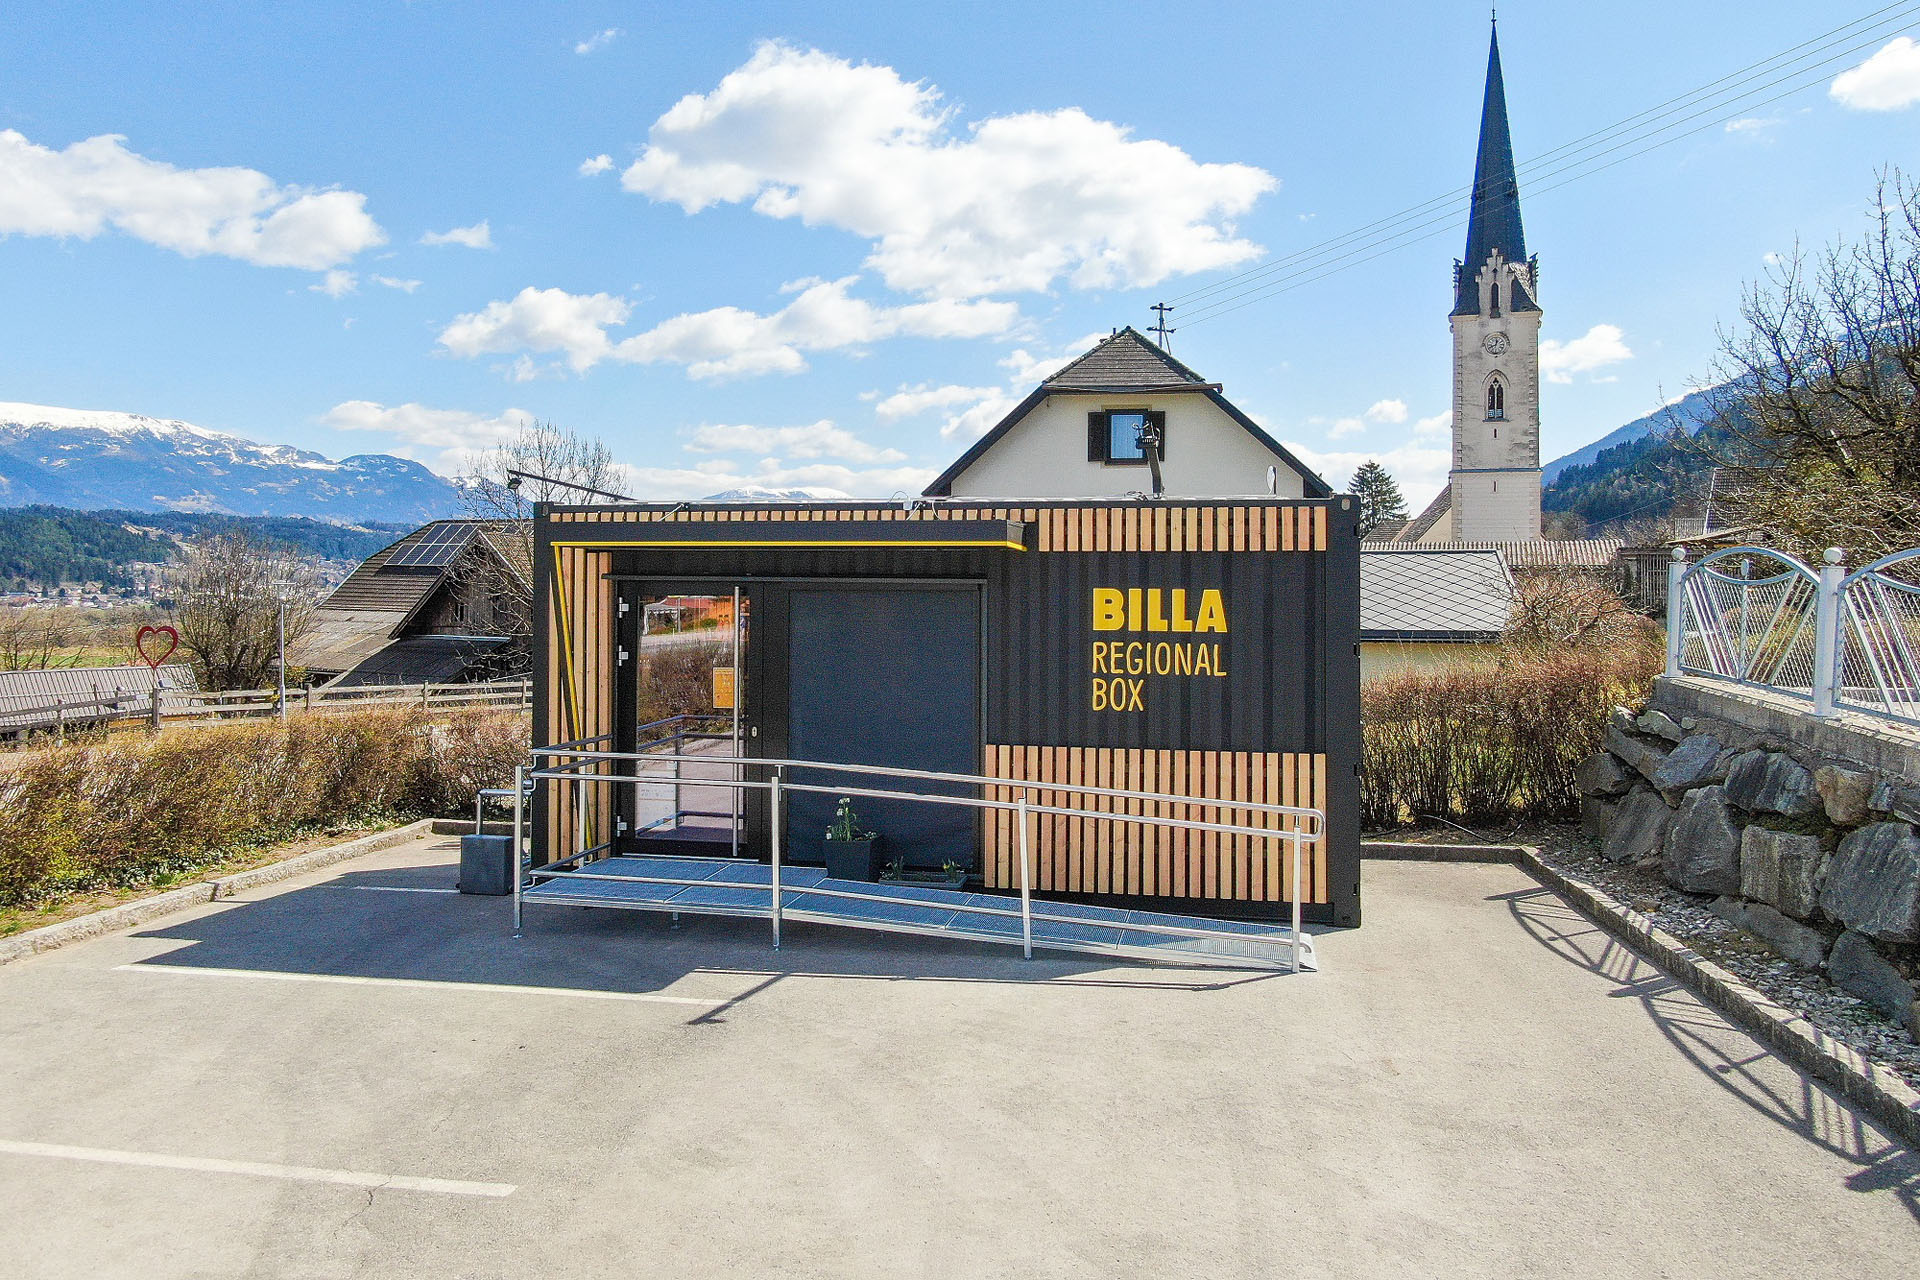 20210428-BILLA-REGIOBOX-2